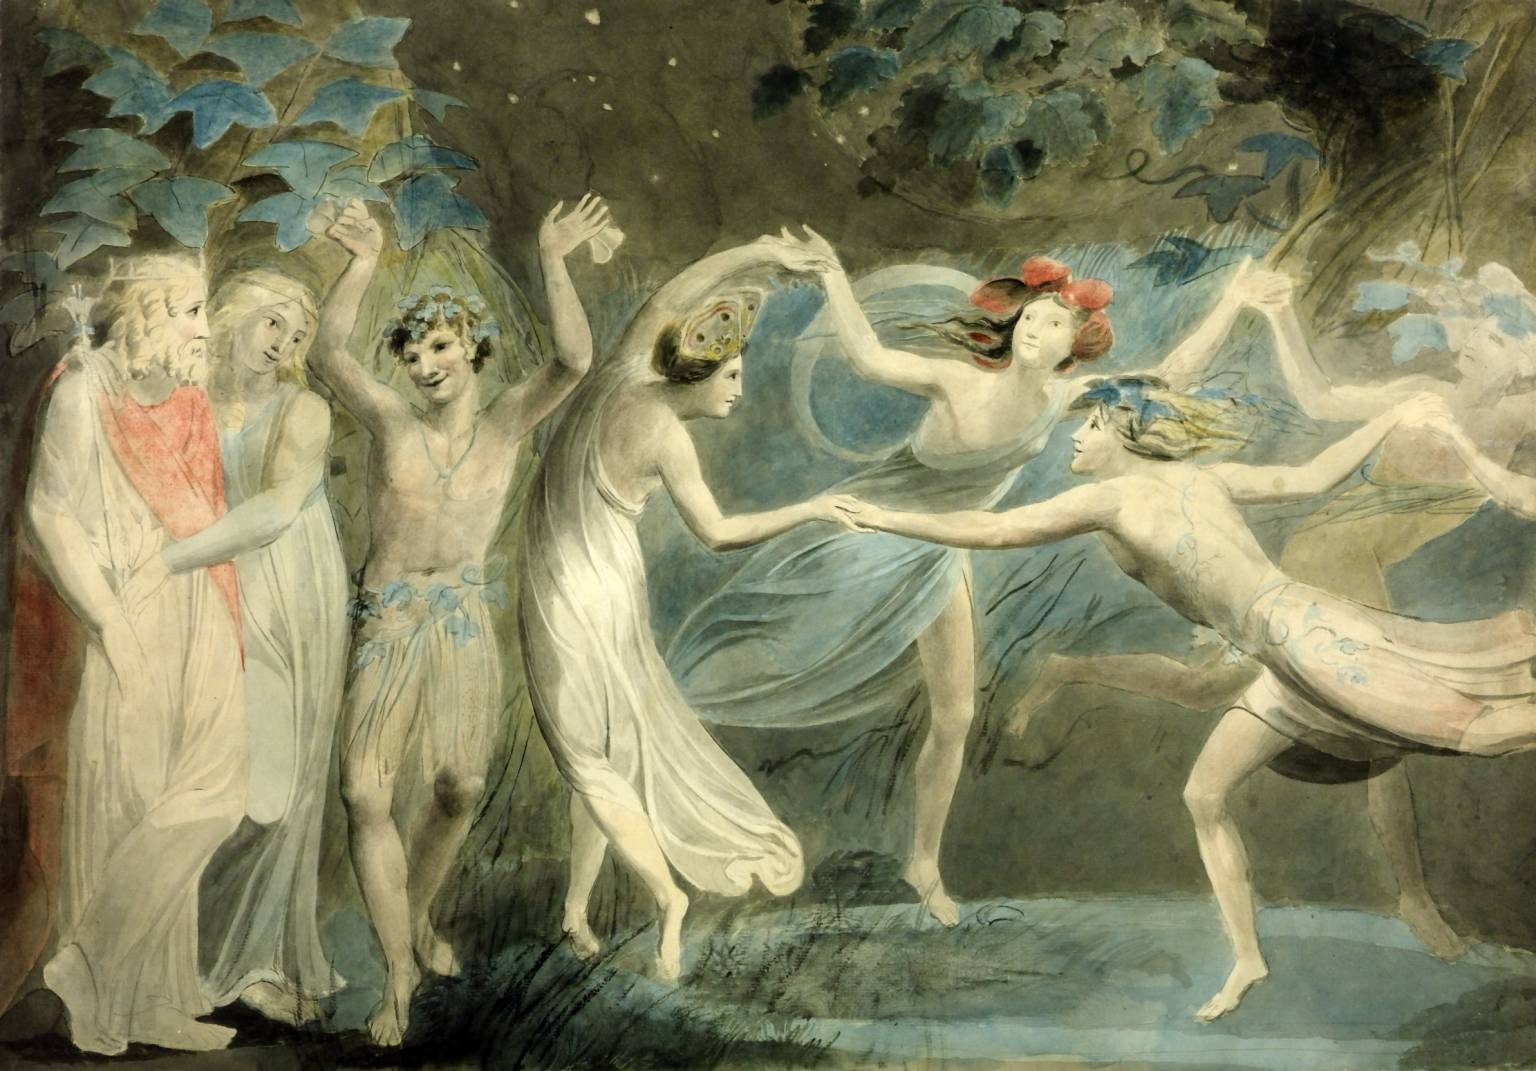 Oberon, Titania and Puck with Fairies Dancing (William Blake, 1786)